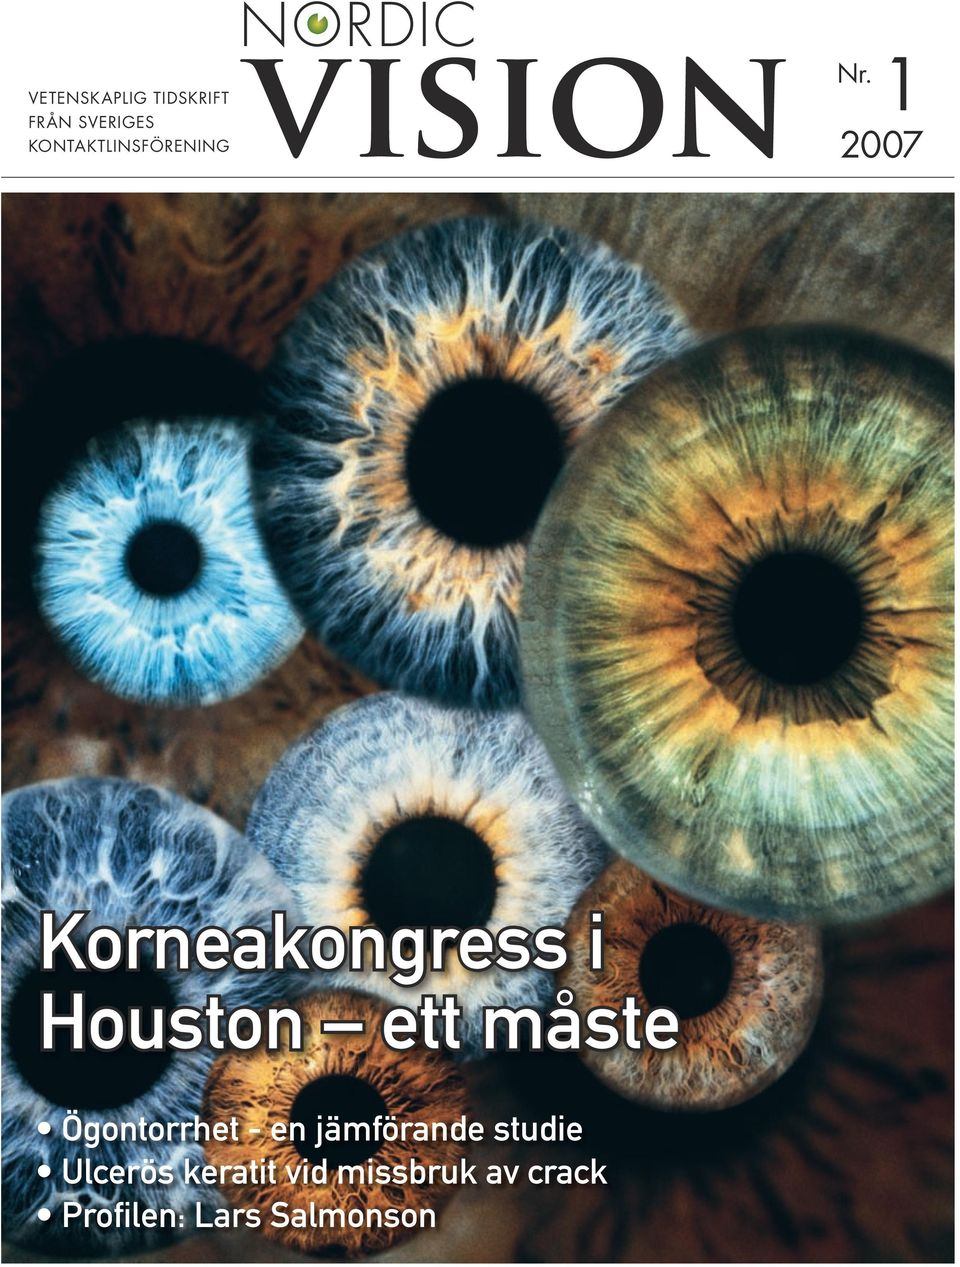 1 2007 Korneakongress i Houston ett måste